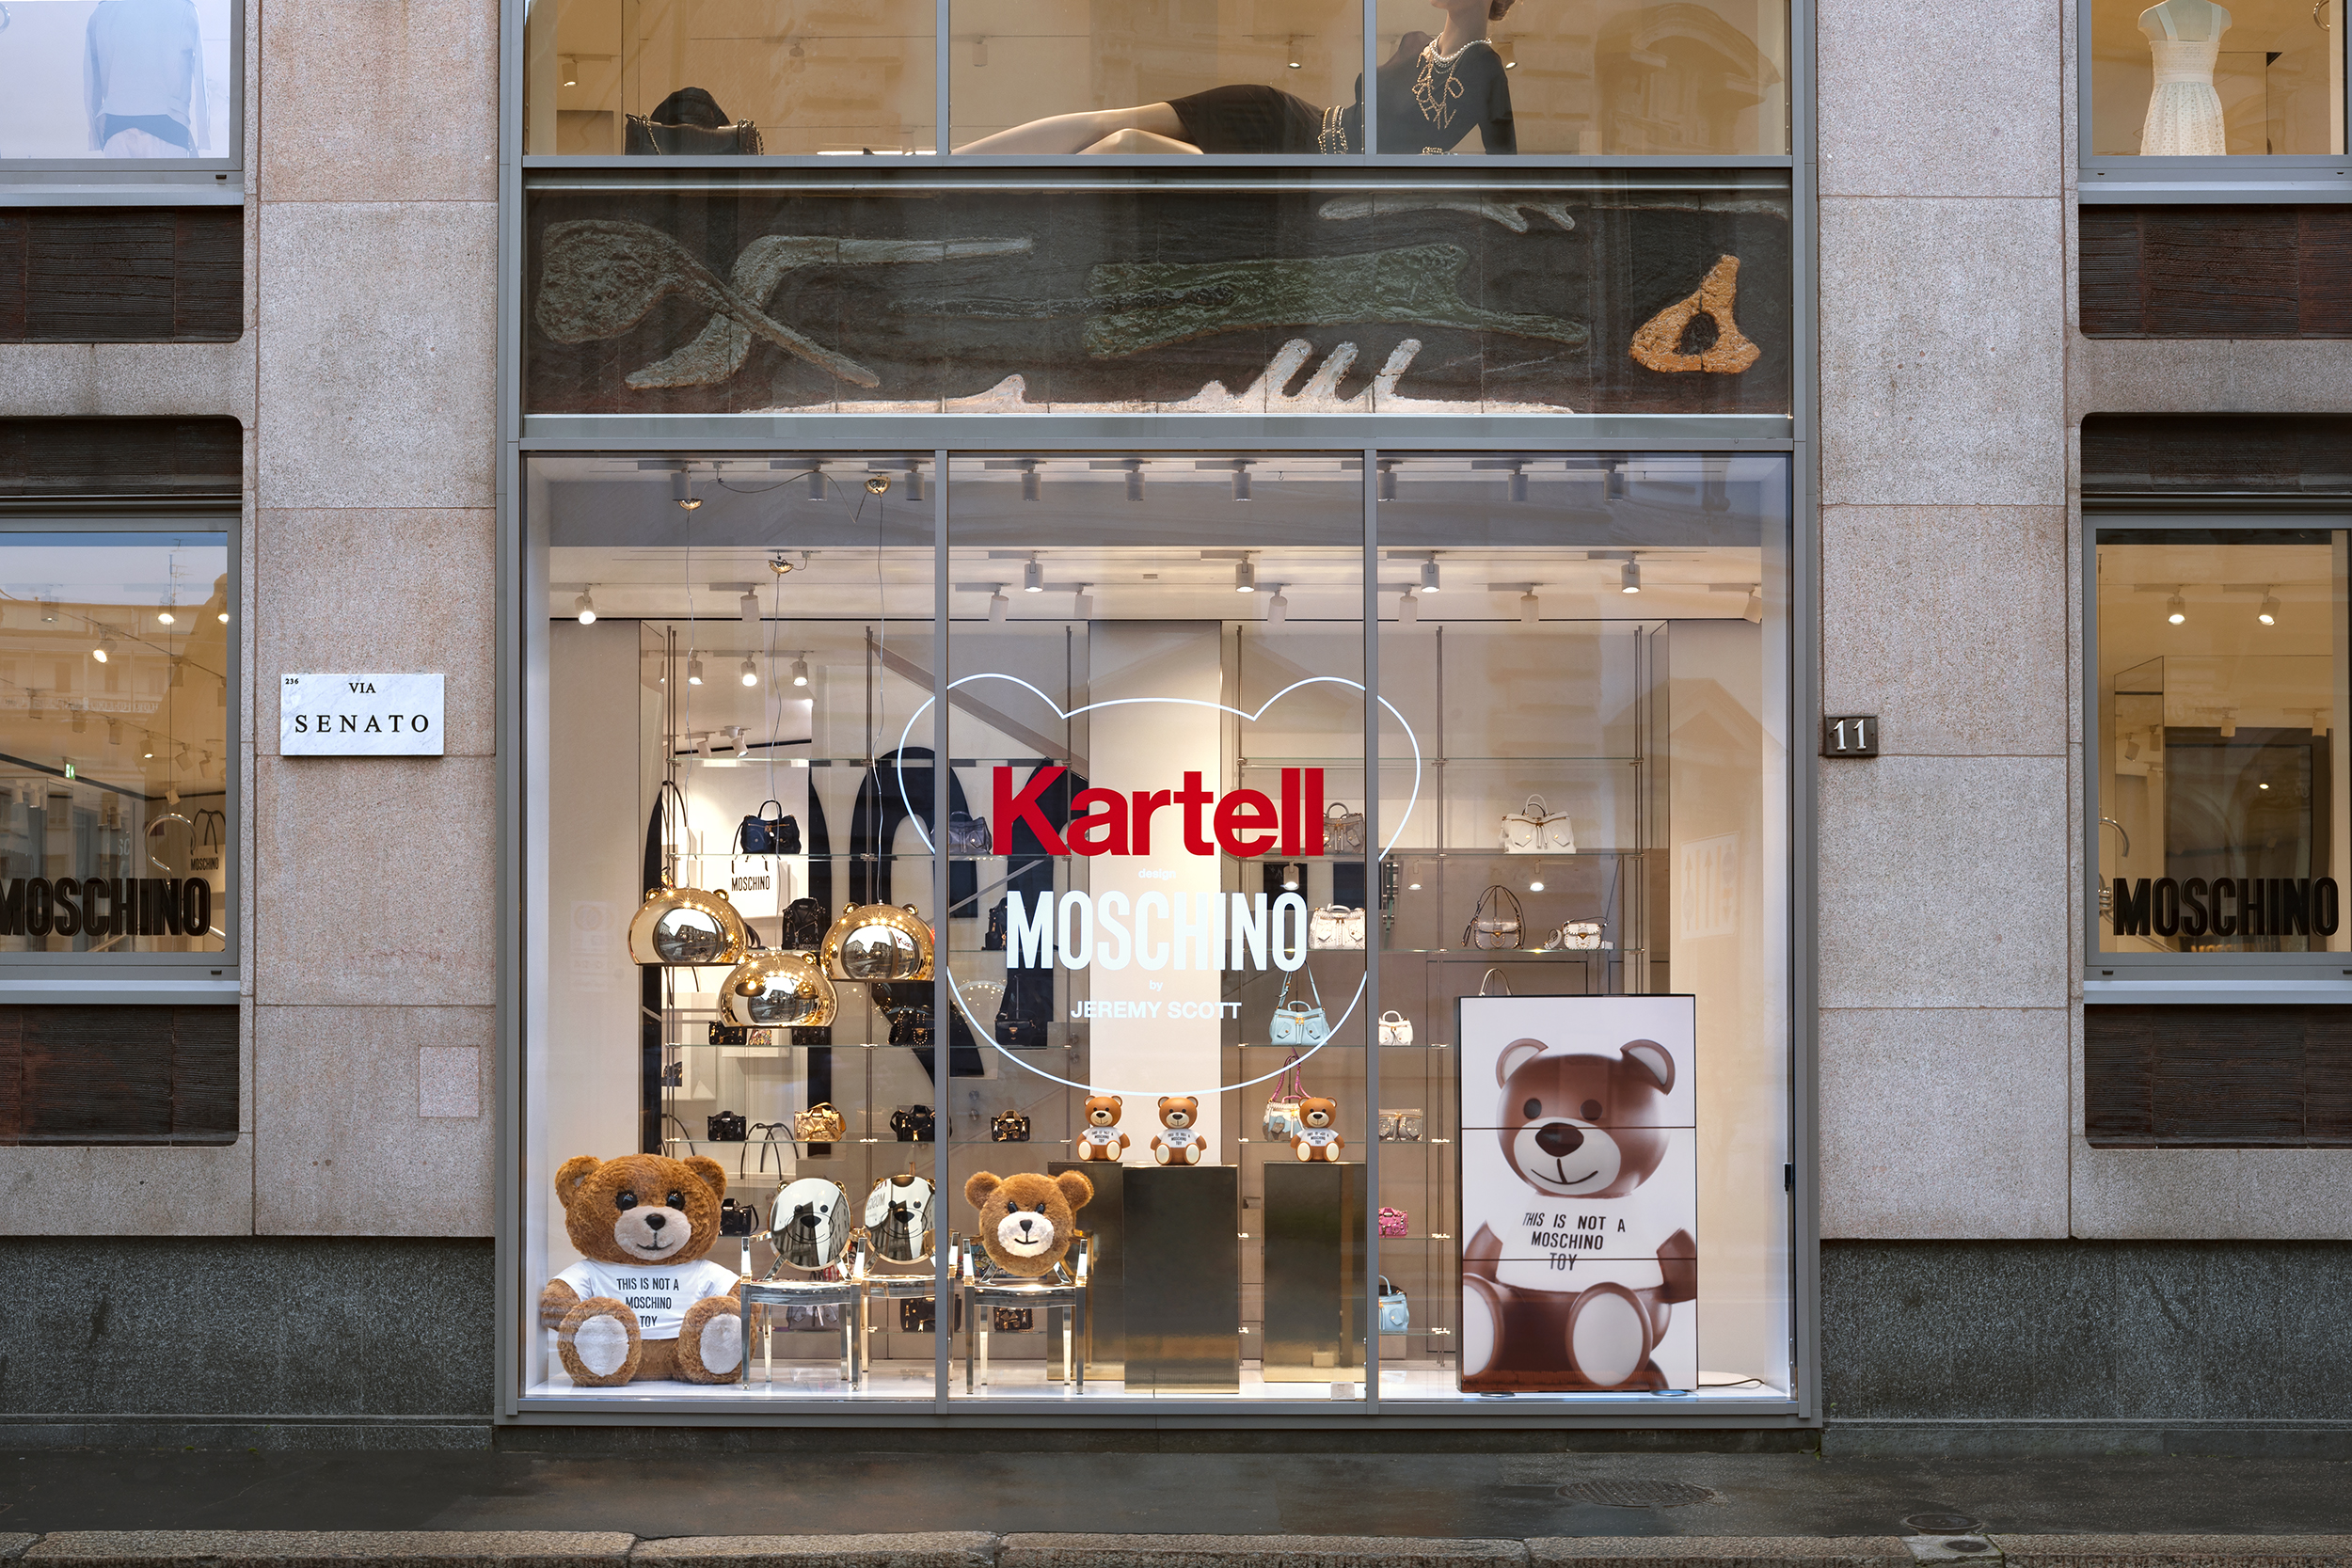 Kartell's collaboration with Moschino produced 'Toy' a bear that is both novelty and light.